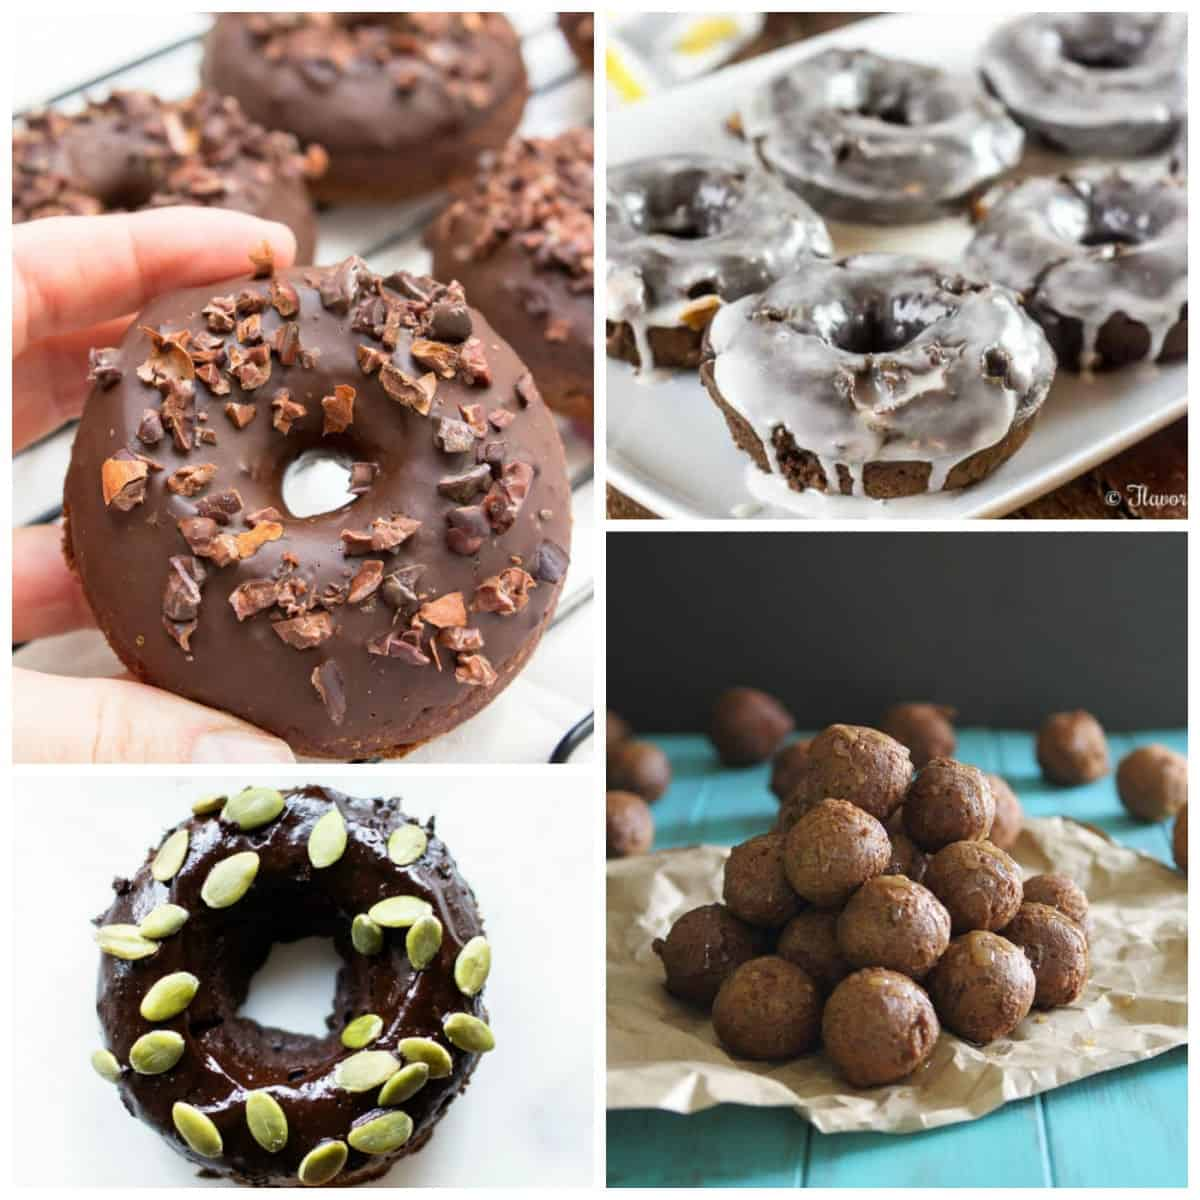 Different doughnuts with toppings, glazes, and donut holes; a collage